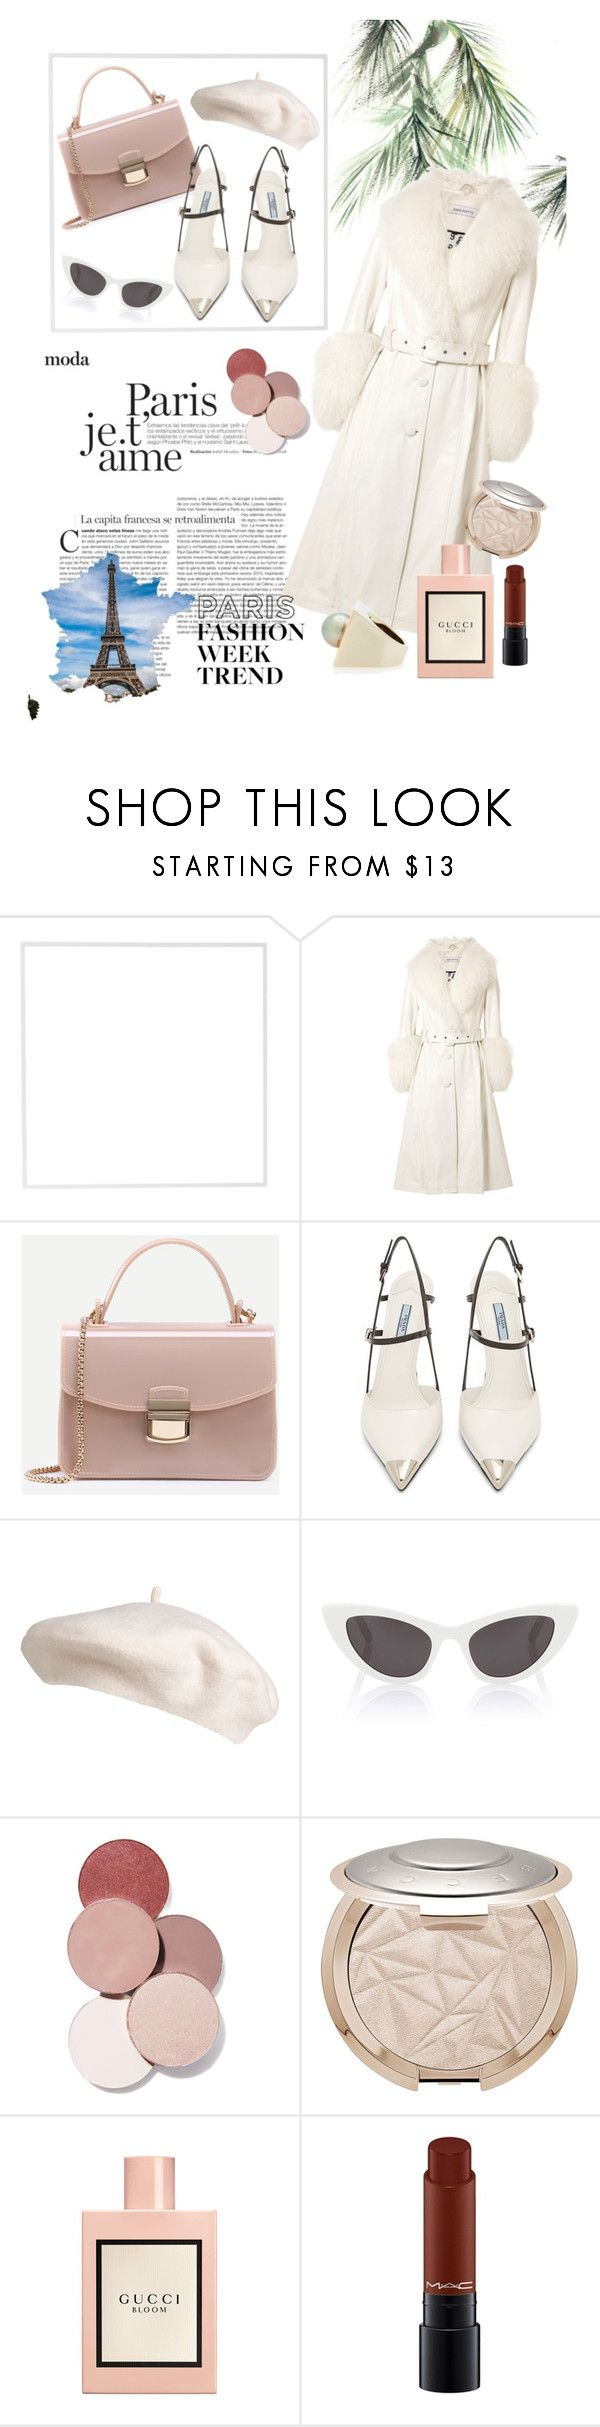 """""""Pack And Go:Paris Fashion Week"""" by denizncicek ❤ liked on Polyvore featuring Eco Style, Menu, Saks Potts, Prada, Yves Saint Laurent, LunatiCK Cosmetic Labs, Gucci, MAC Cosmetics, Alina Abegg and fashionset"""